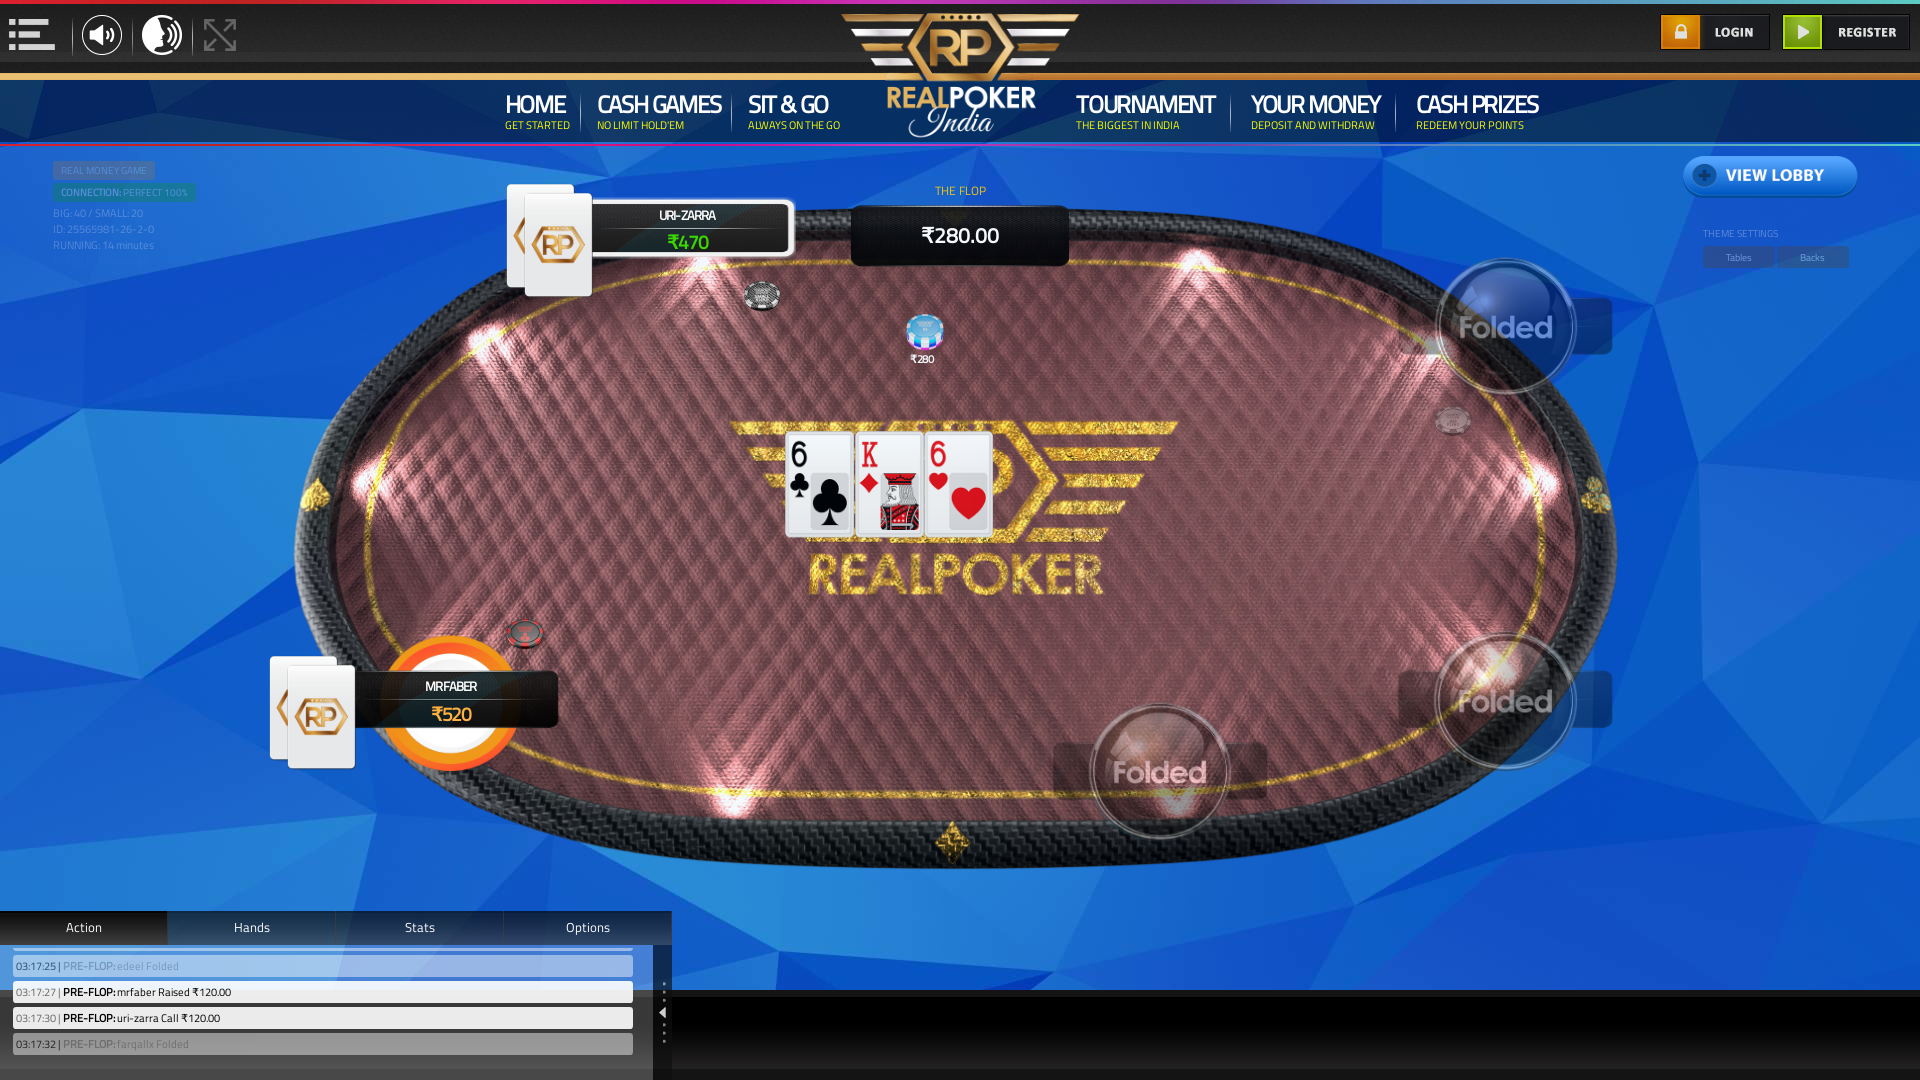 Real indian poker on a 10 player table in the 14th minute of the game